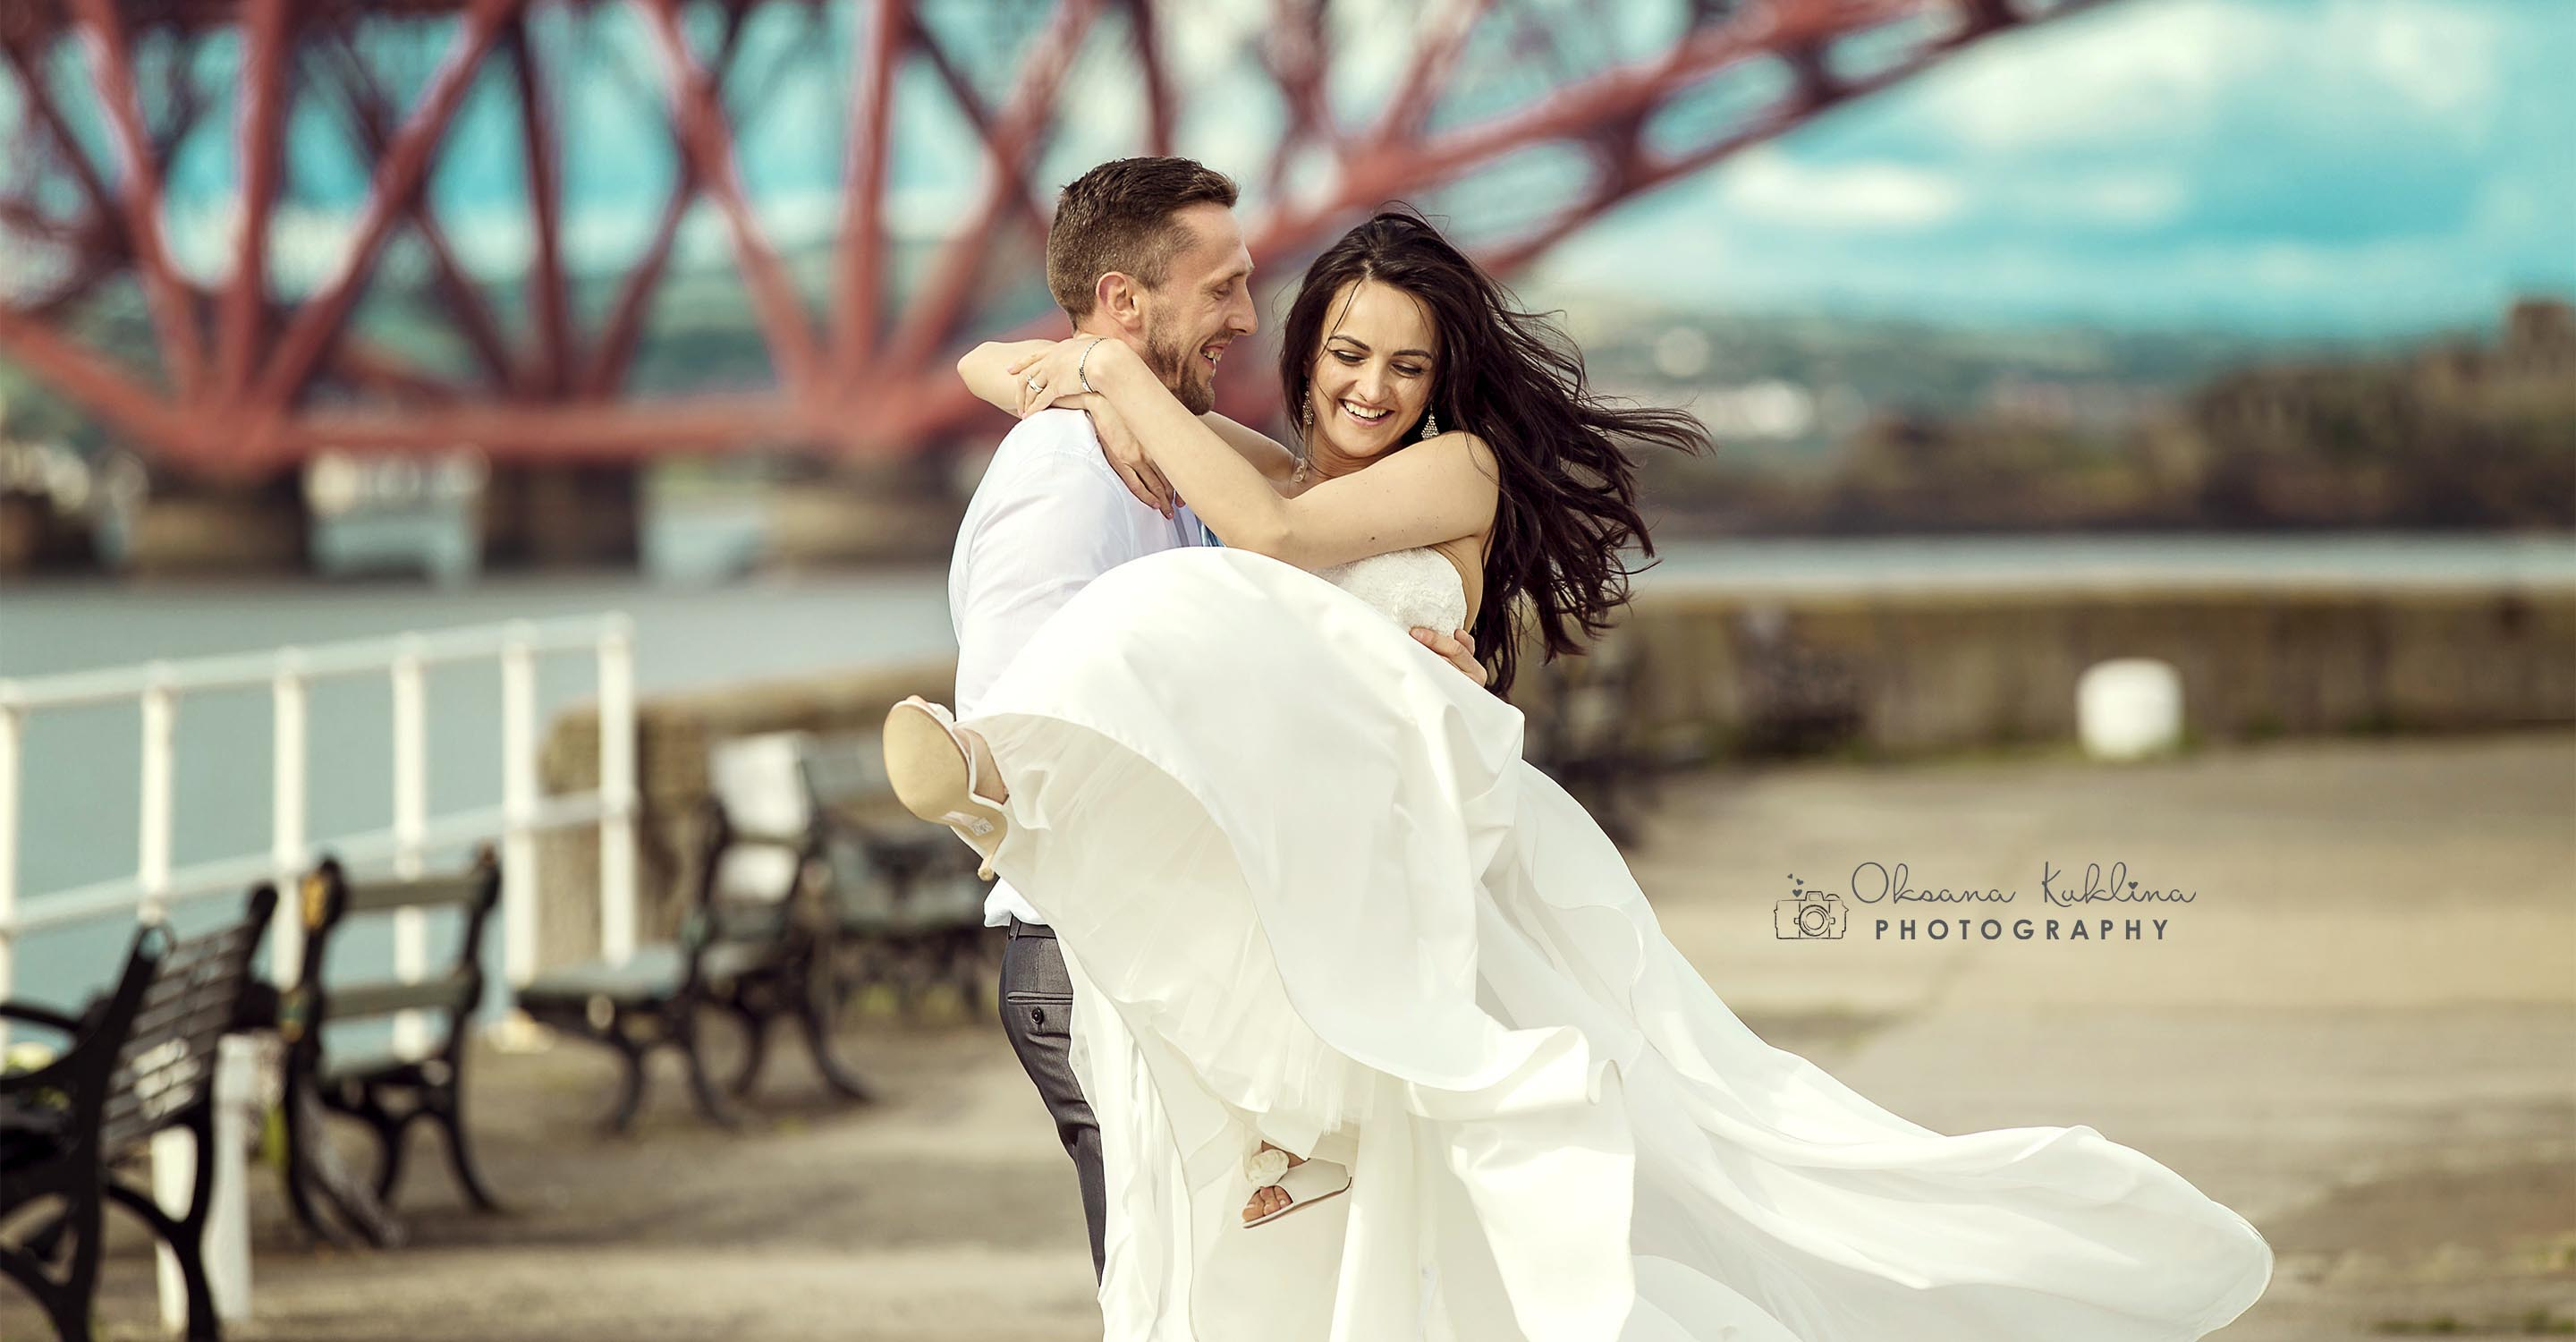 South Queensferry Wedding Photographer - Edinburgh Wedding Photography - The Forth Bridge Wedding - Scotland adventure - Adventurous couple - Couple Photo